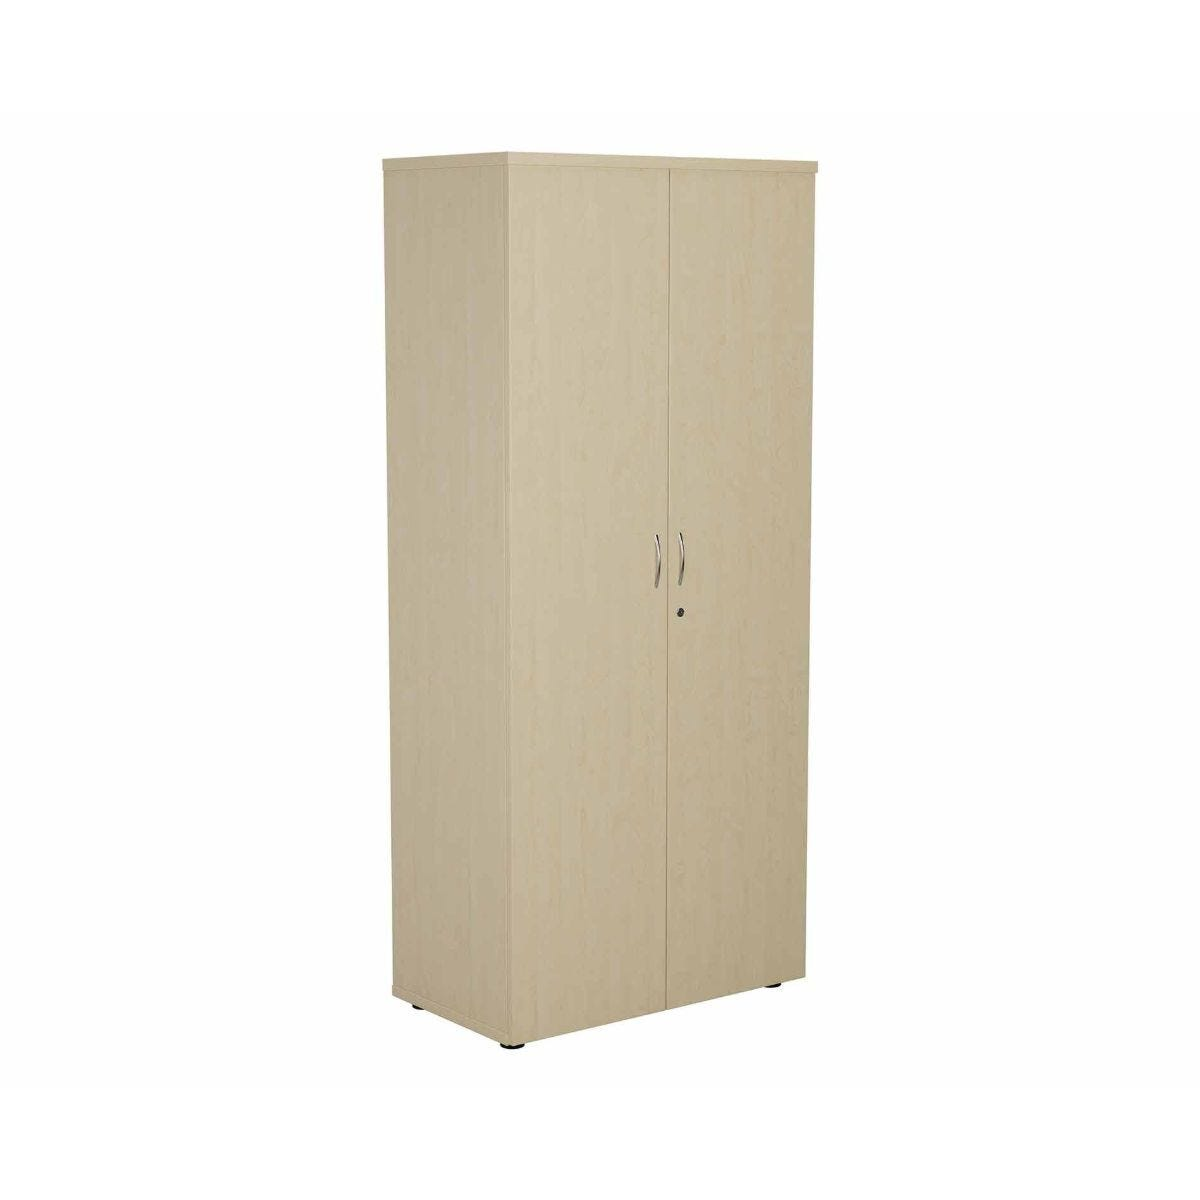 TC Office Cupboard with Lockable Doors with 4 Shelves Height 1800mm Maple